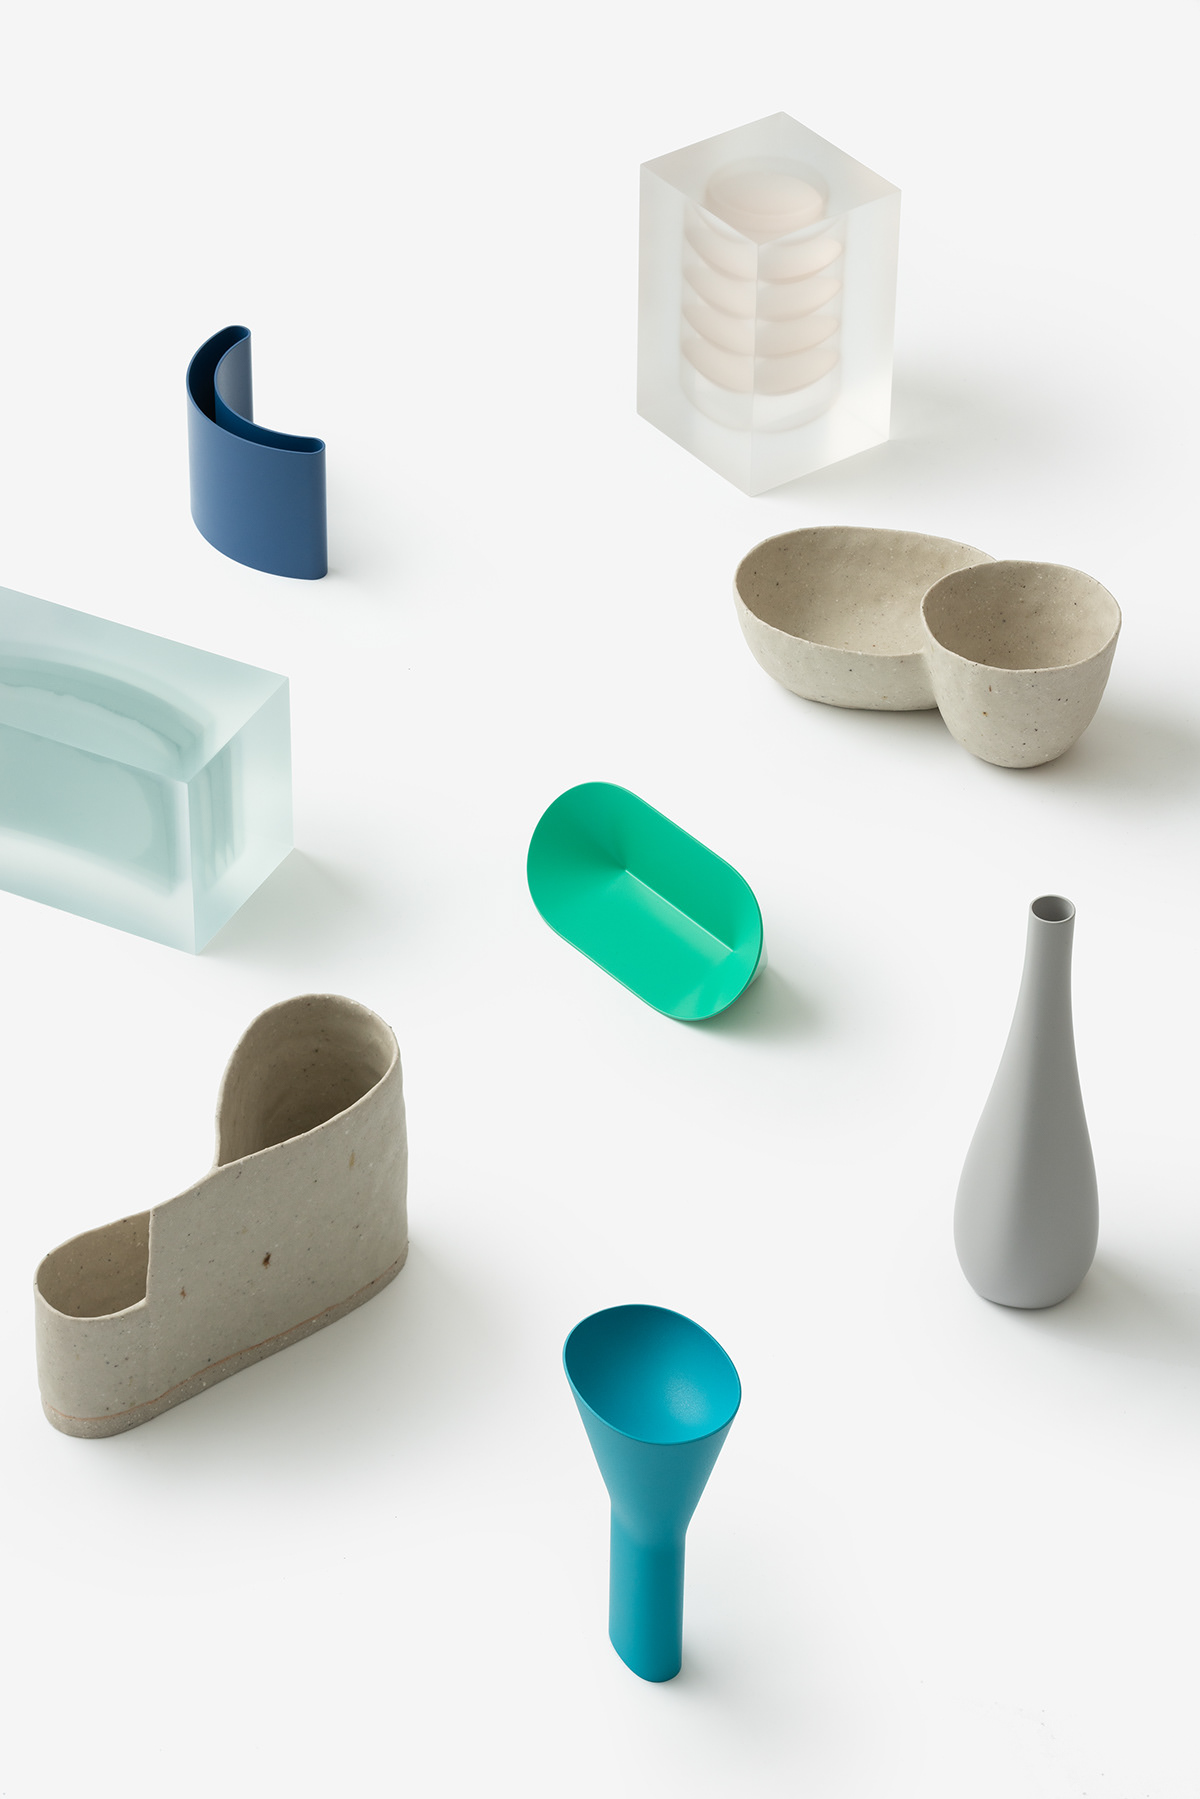 bkid design identity industrial design  material object product productdesign